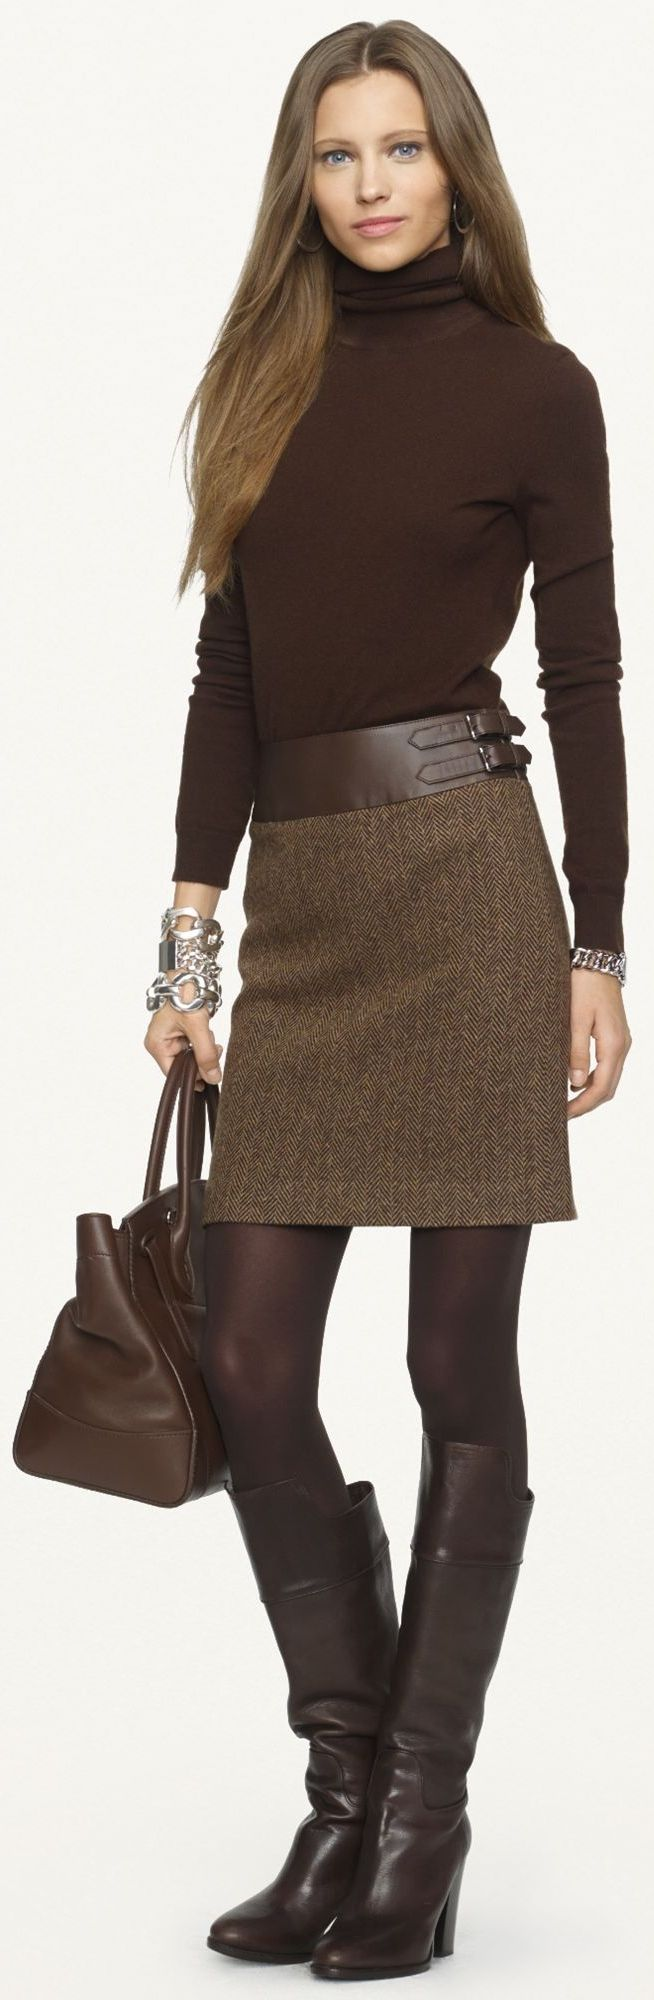 Ralph Lauren Black Label - Leather-Trimmed Kieron Skirt | Iets voor HB MODE, Ommen: Fashion in Overijssel?